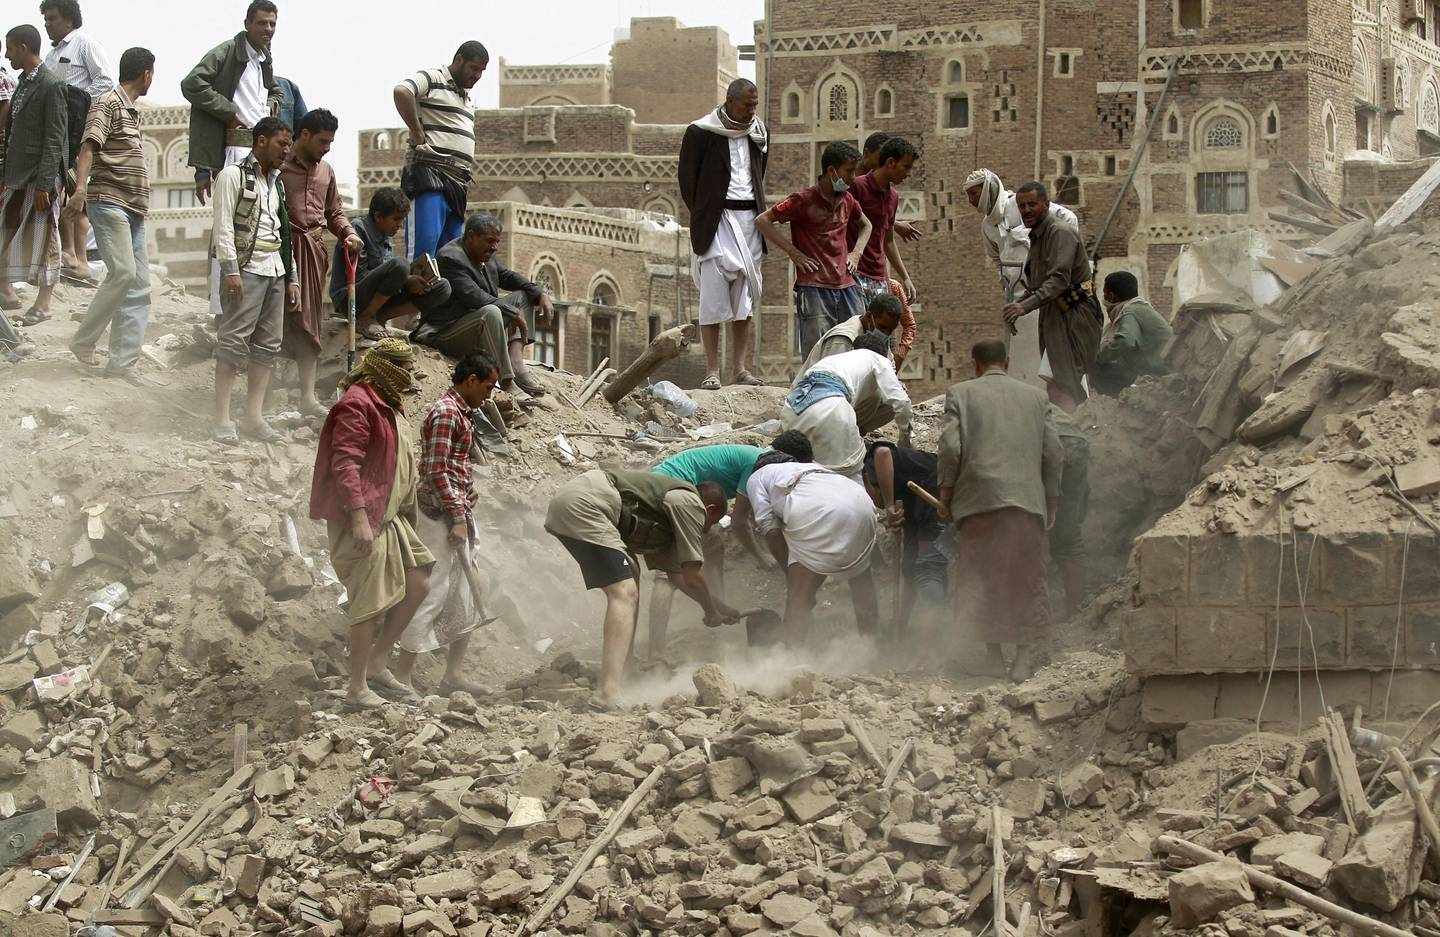 Yemenis search for survivors under the rubble of houses in the UNESCO-listed heritage site in the old city of Yemeni capital Sanaa, on June 12, 2015 following an overnight Saudi-led air strike. Residents said the pre-dawn strike was the first direct hit on old Sanaa since the launch of the bombing campaign against Shiite Huthi rebels in late March. AFP PHOTO / MOHAMMED HUWAIS